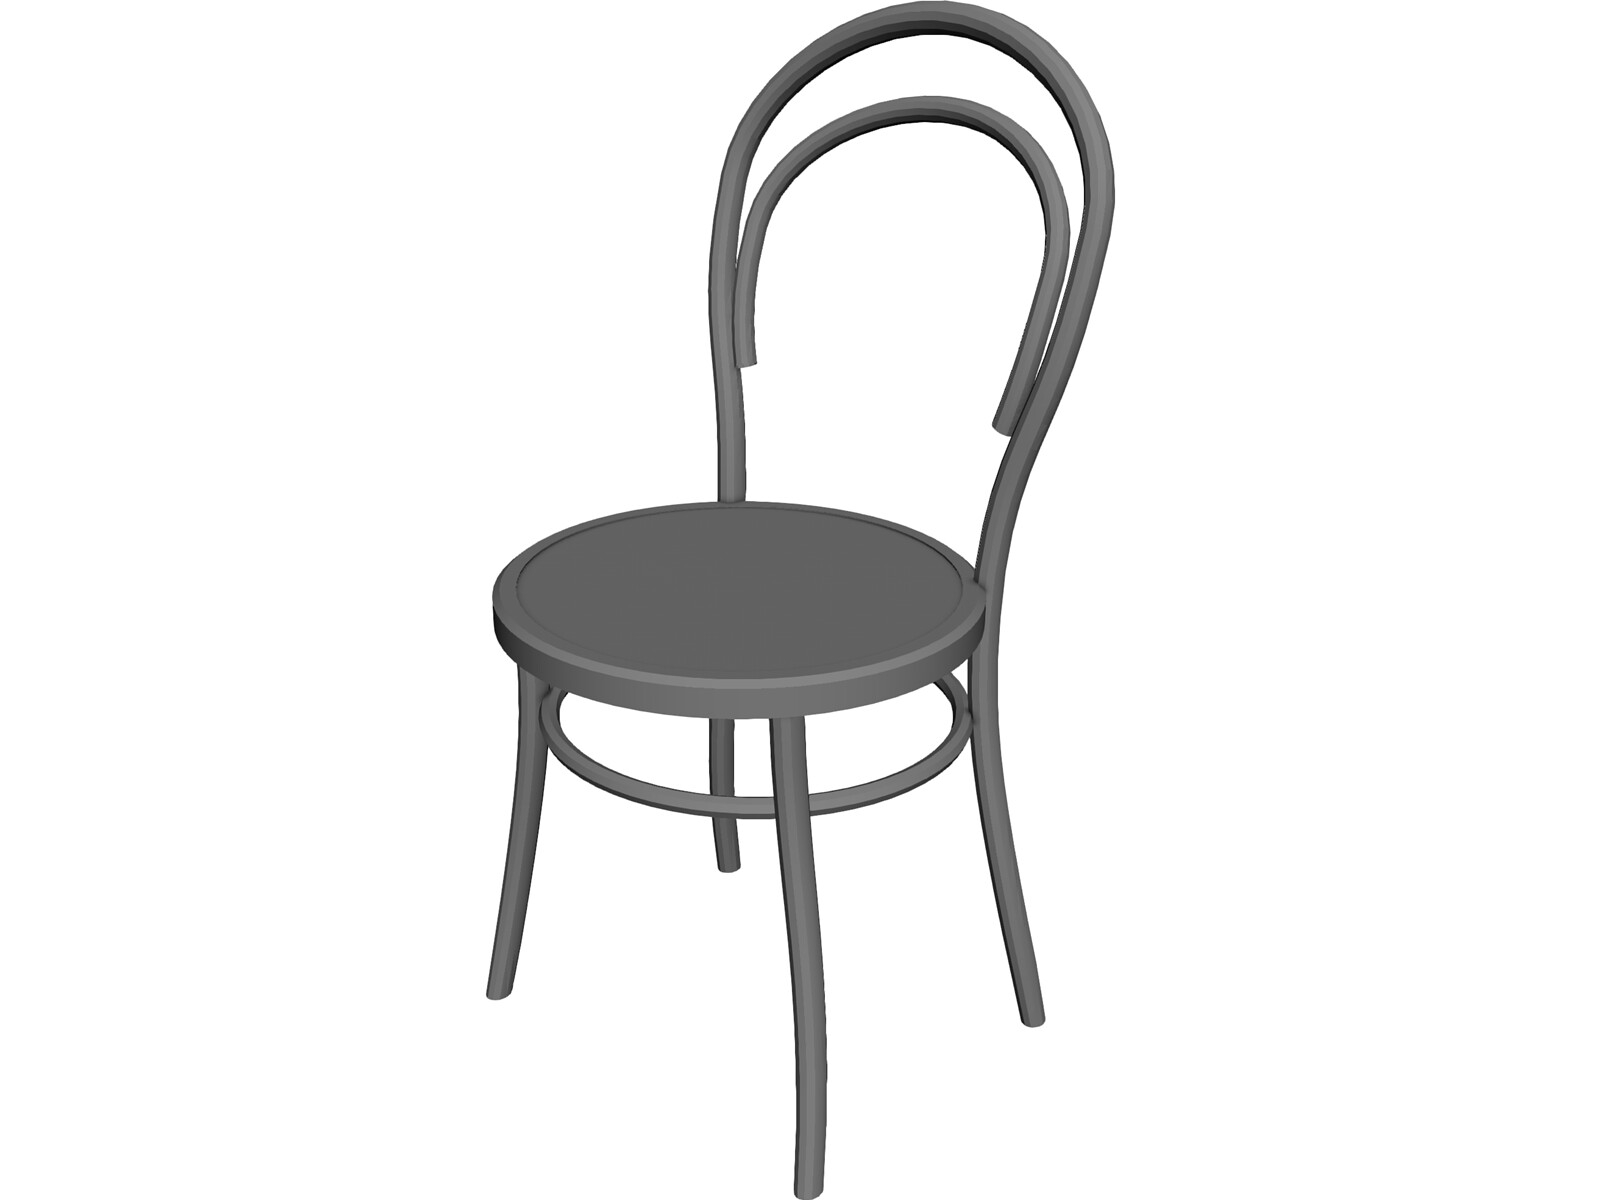 Retro chair 3d model 3d cad browser for Chair 3d model maya